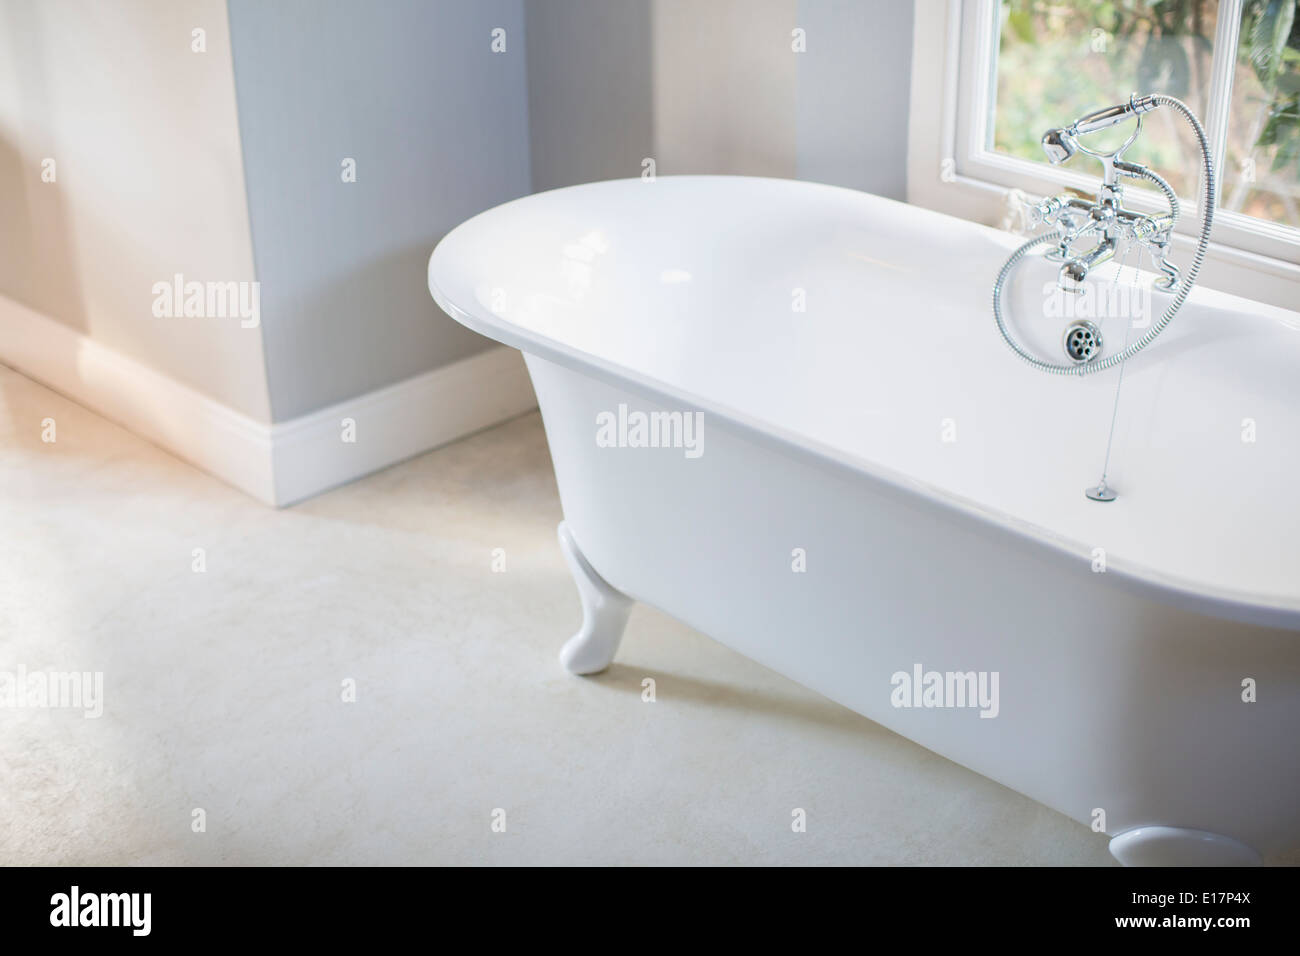 Claw Foot Tub Stock Photos & Claw Foot Tub Stock Images - Alamy